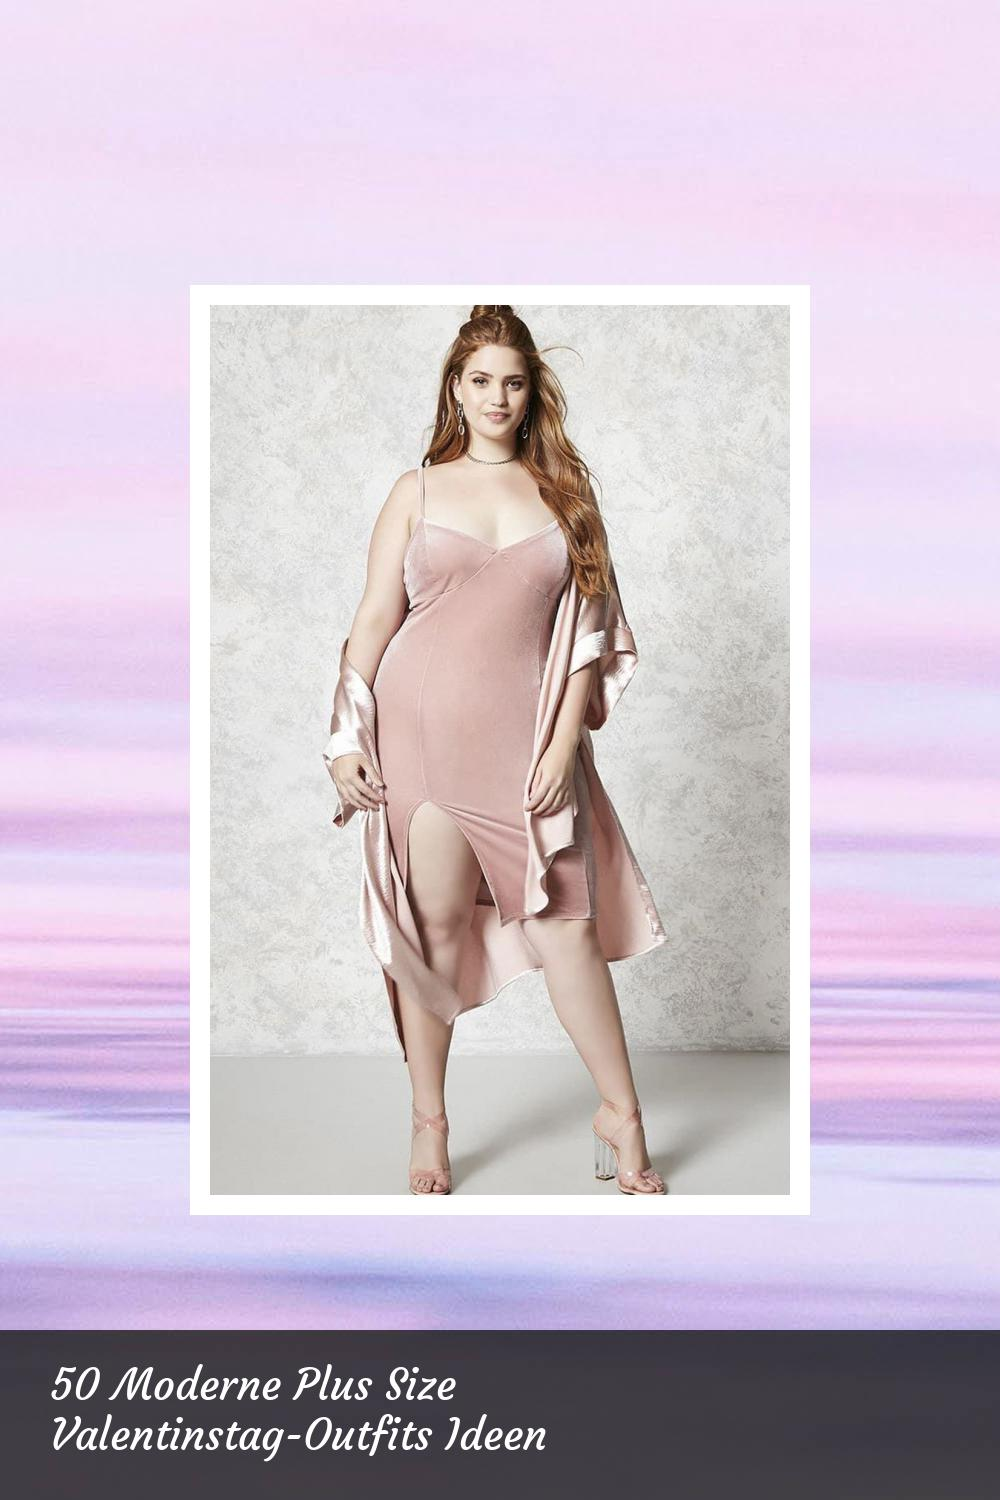 50 Moderne Plus Size Valentinstag-Outfits Ideen 2